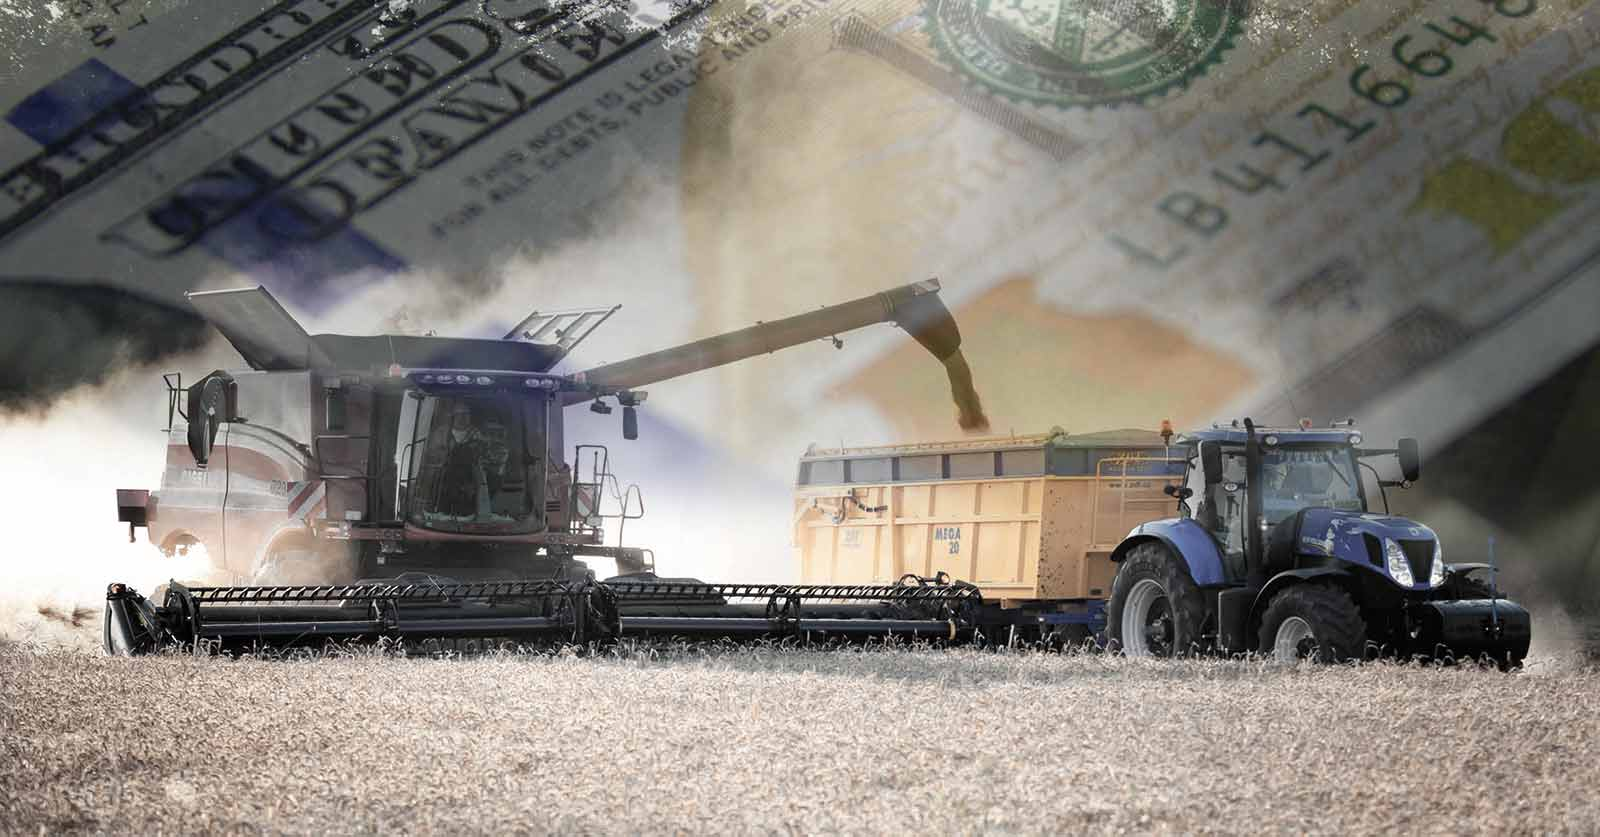 image of a tractor with an overlay of $100 bills